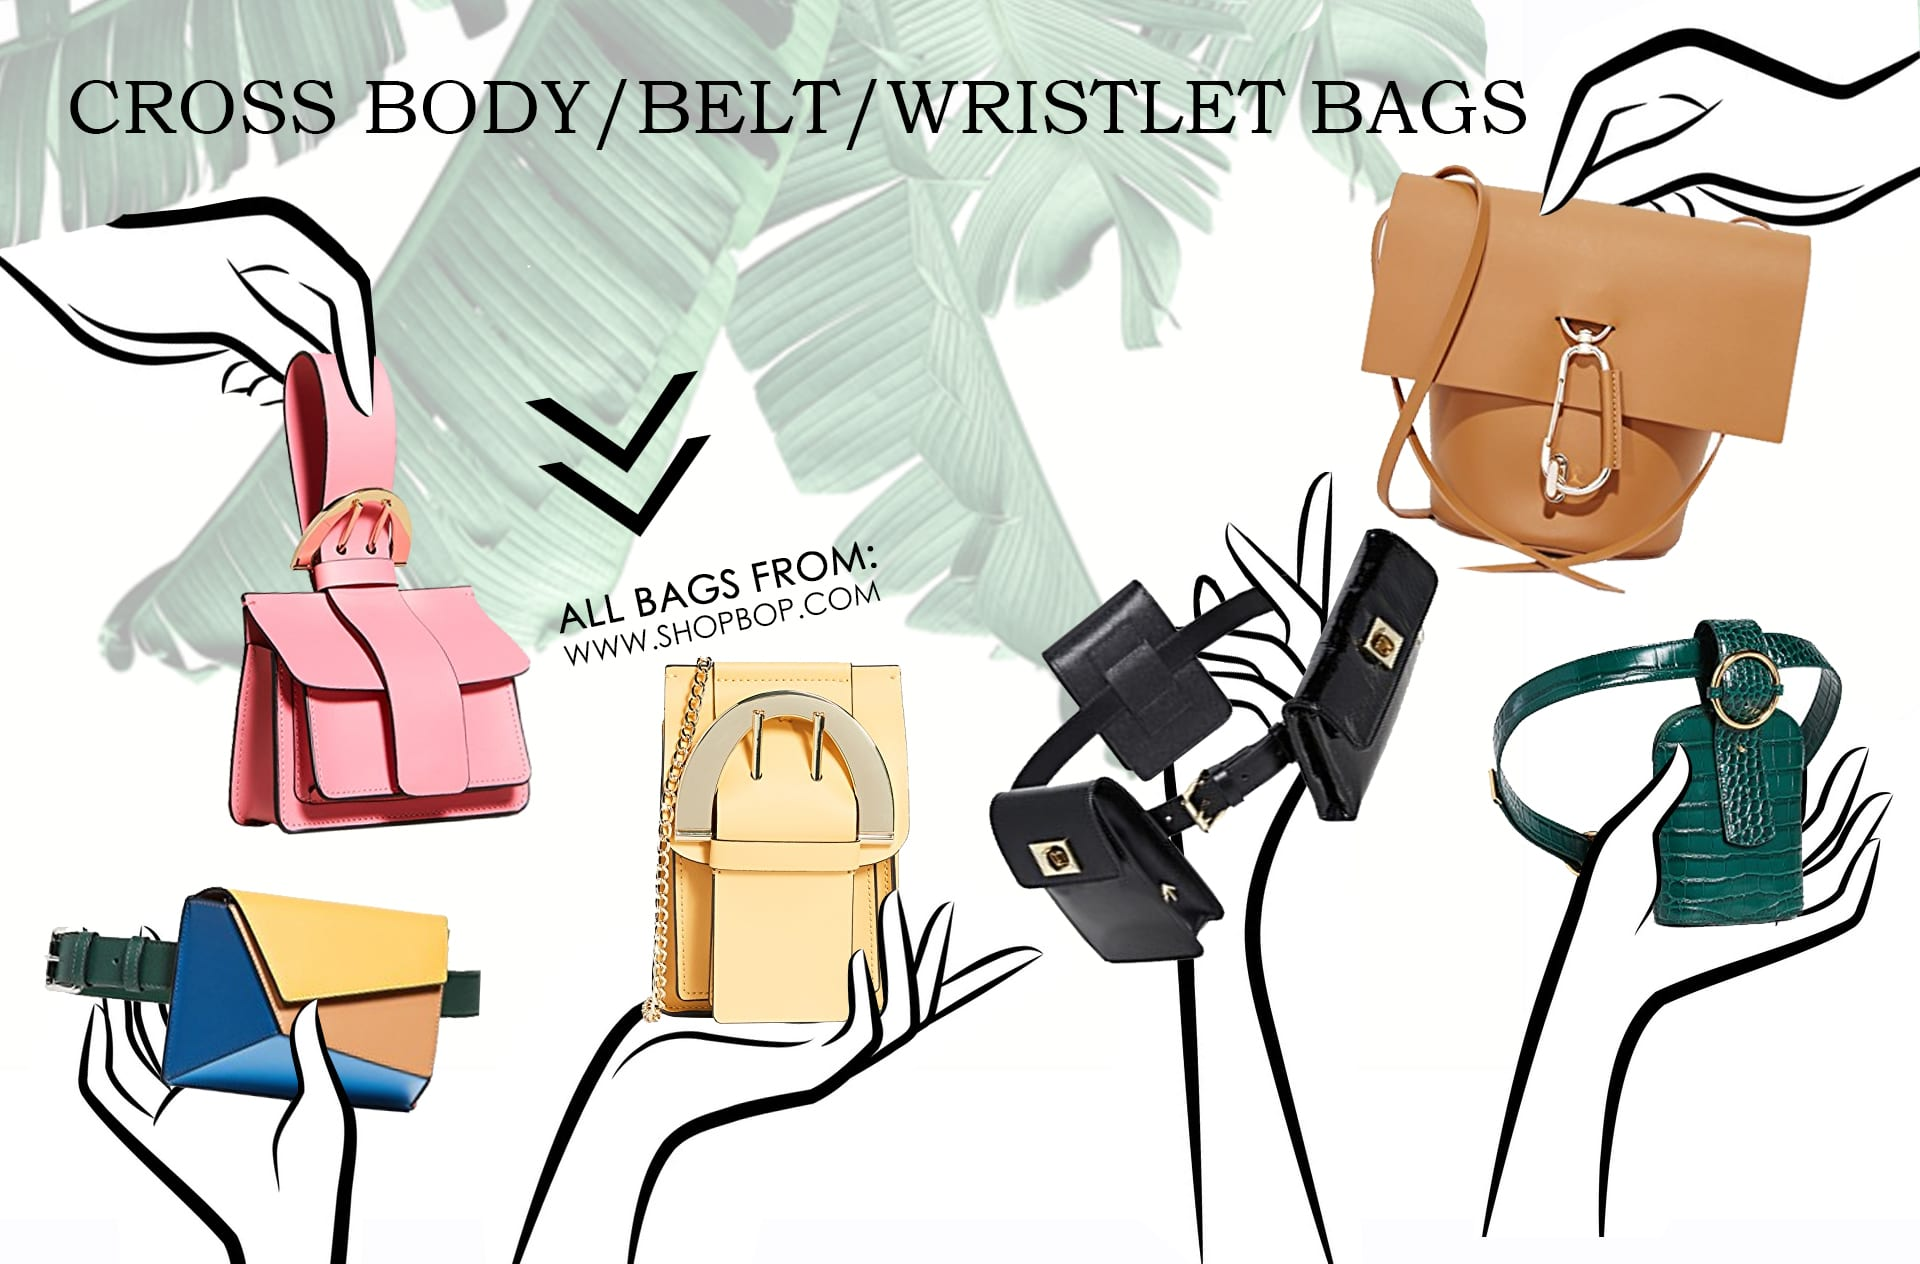 Crossbody, Belt, and Wristlet Bags